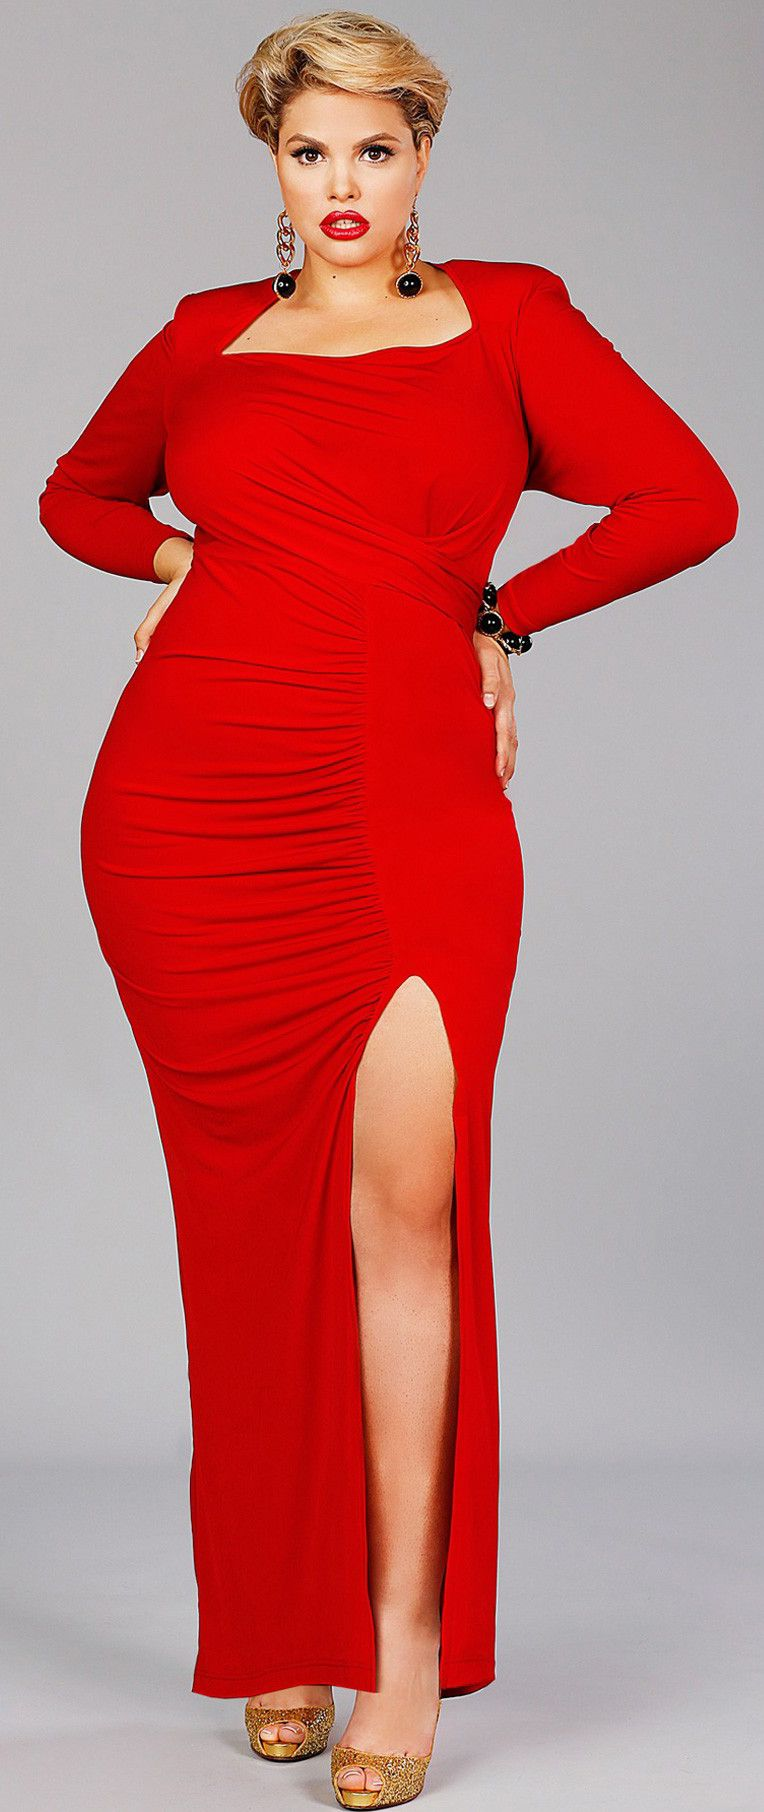 Red dress- I would love the courage to wear something like this ...